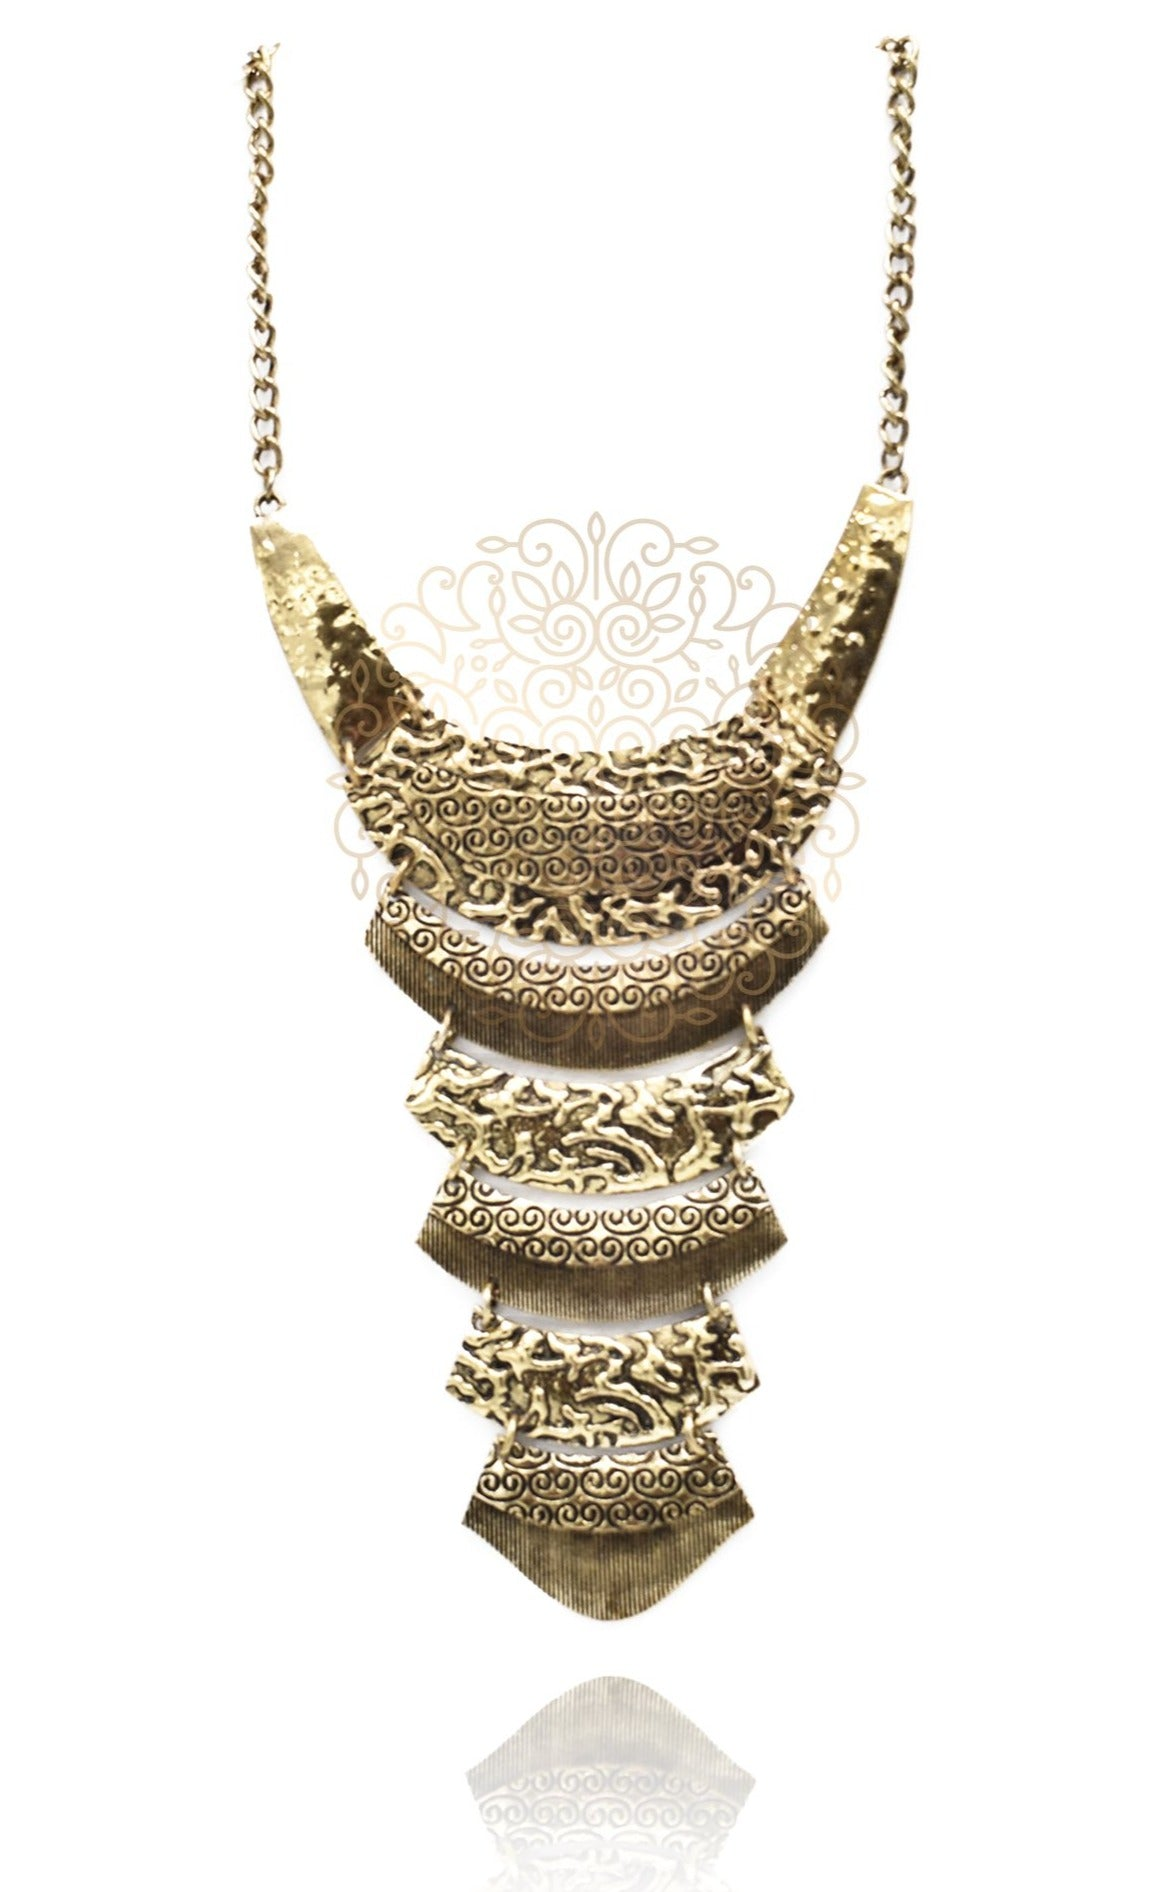 Josie Boho Necklace - The Pashm